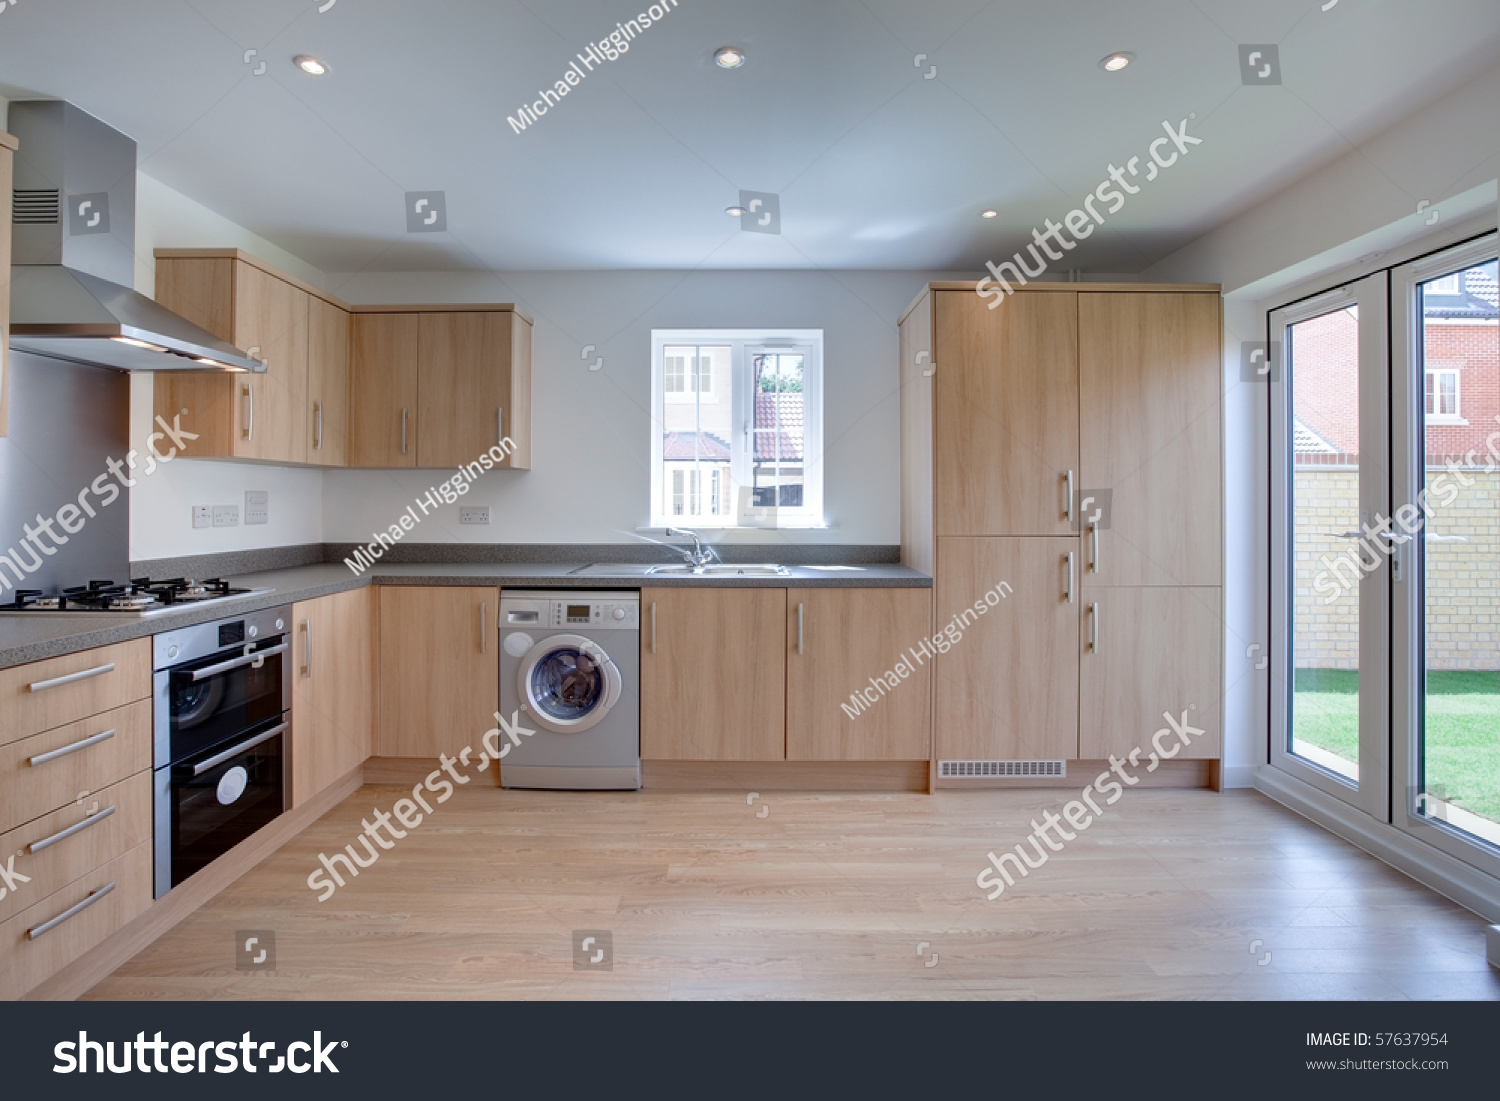 Uncategorized Fitted Kitchen Appliances new fitted kitchen built appliances stock photo 57637954 with in appliances